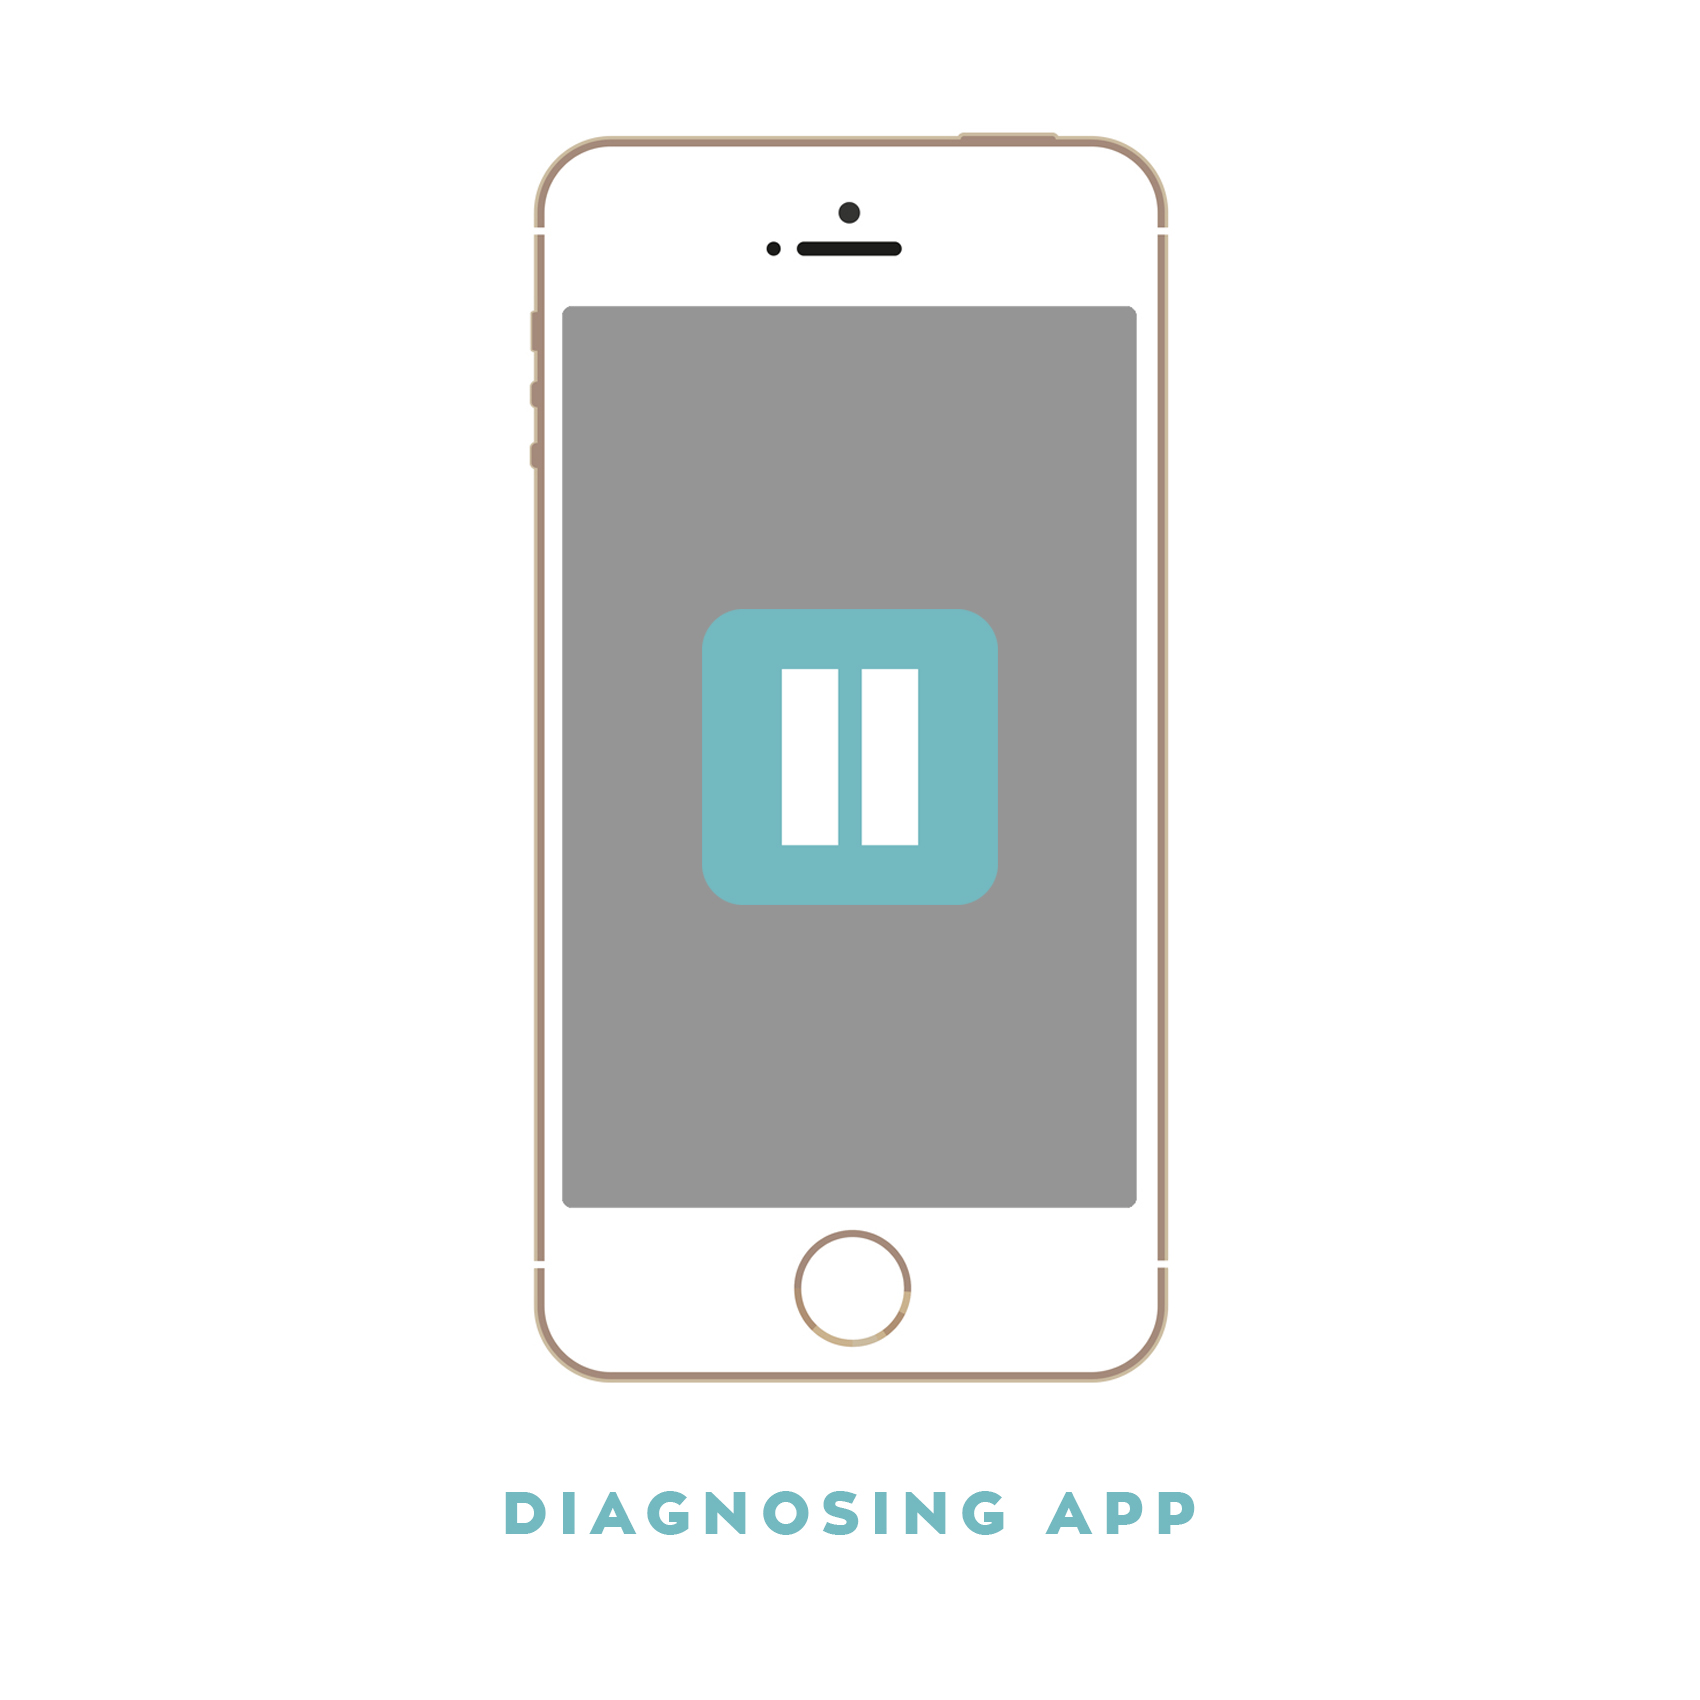 PAUSE   The First Mobile Diagnostic App for Prescribing BHRT  Learn how to prescribe bioidentical hormone replacement therapy and lifestyle changes to treat age-related hormonal imbalances with PAUSE, a BHRT Clinical Reference application.